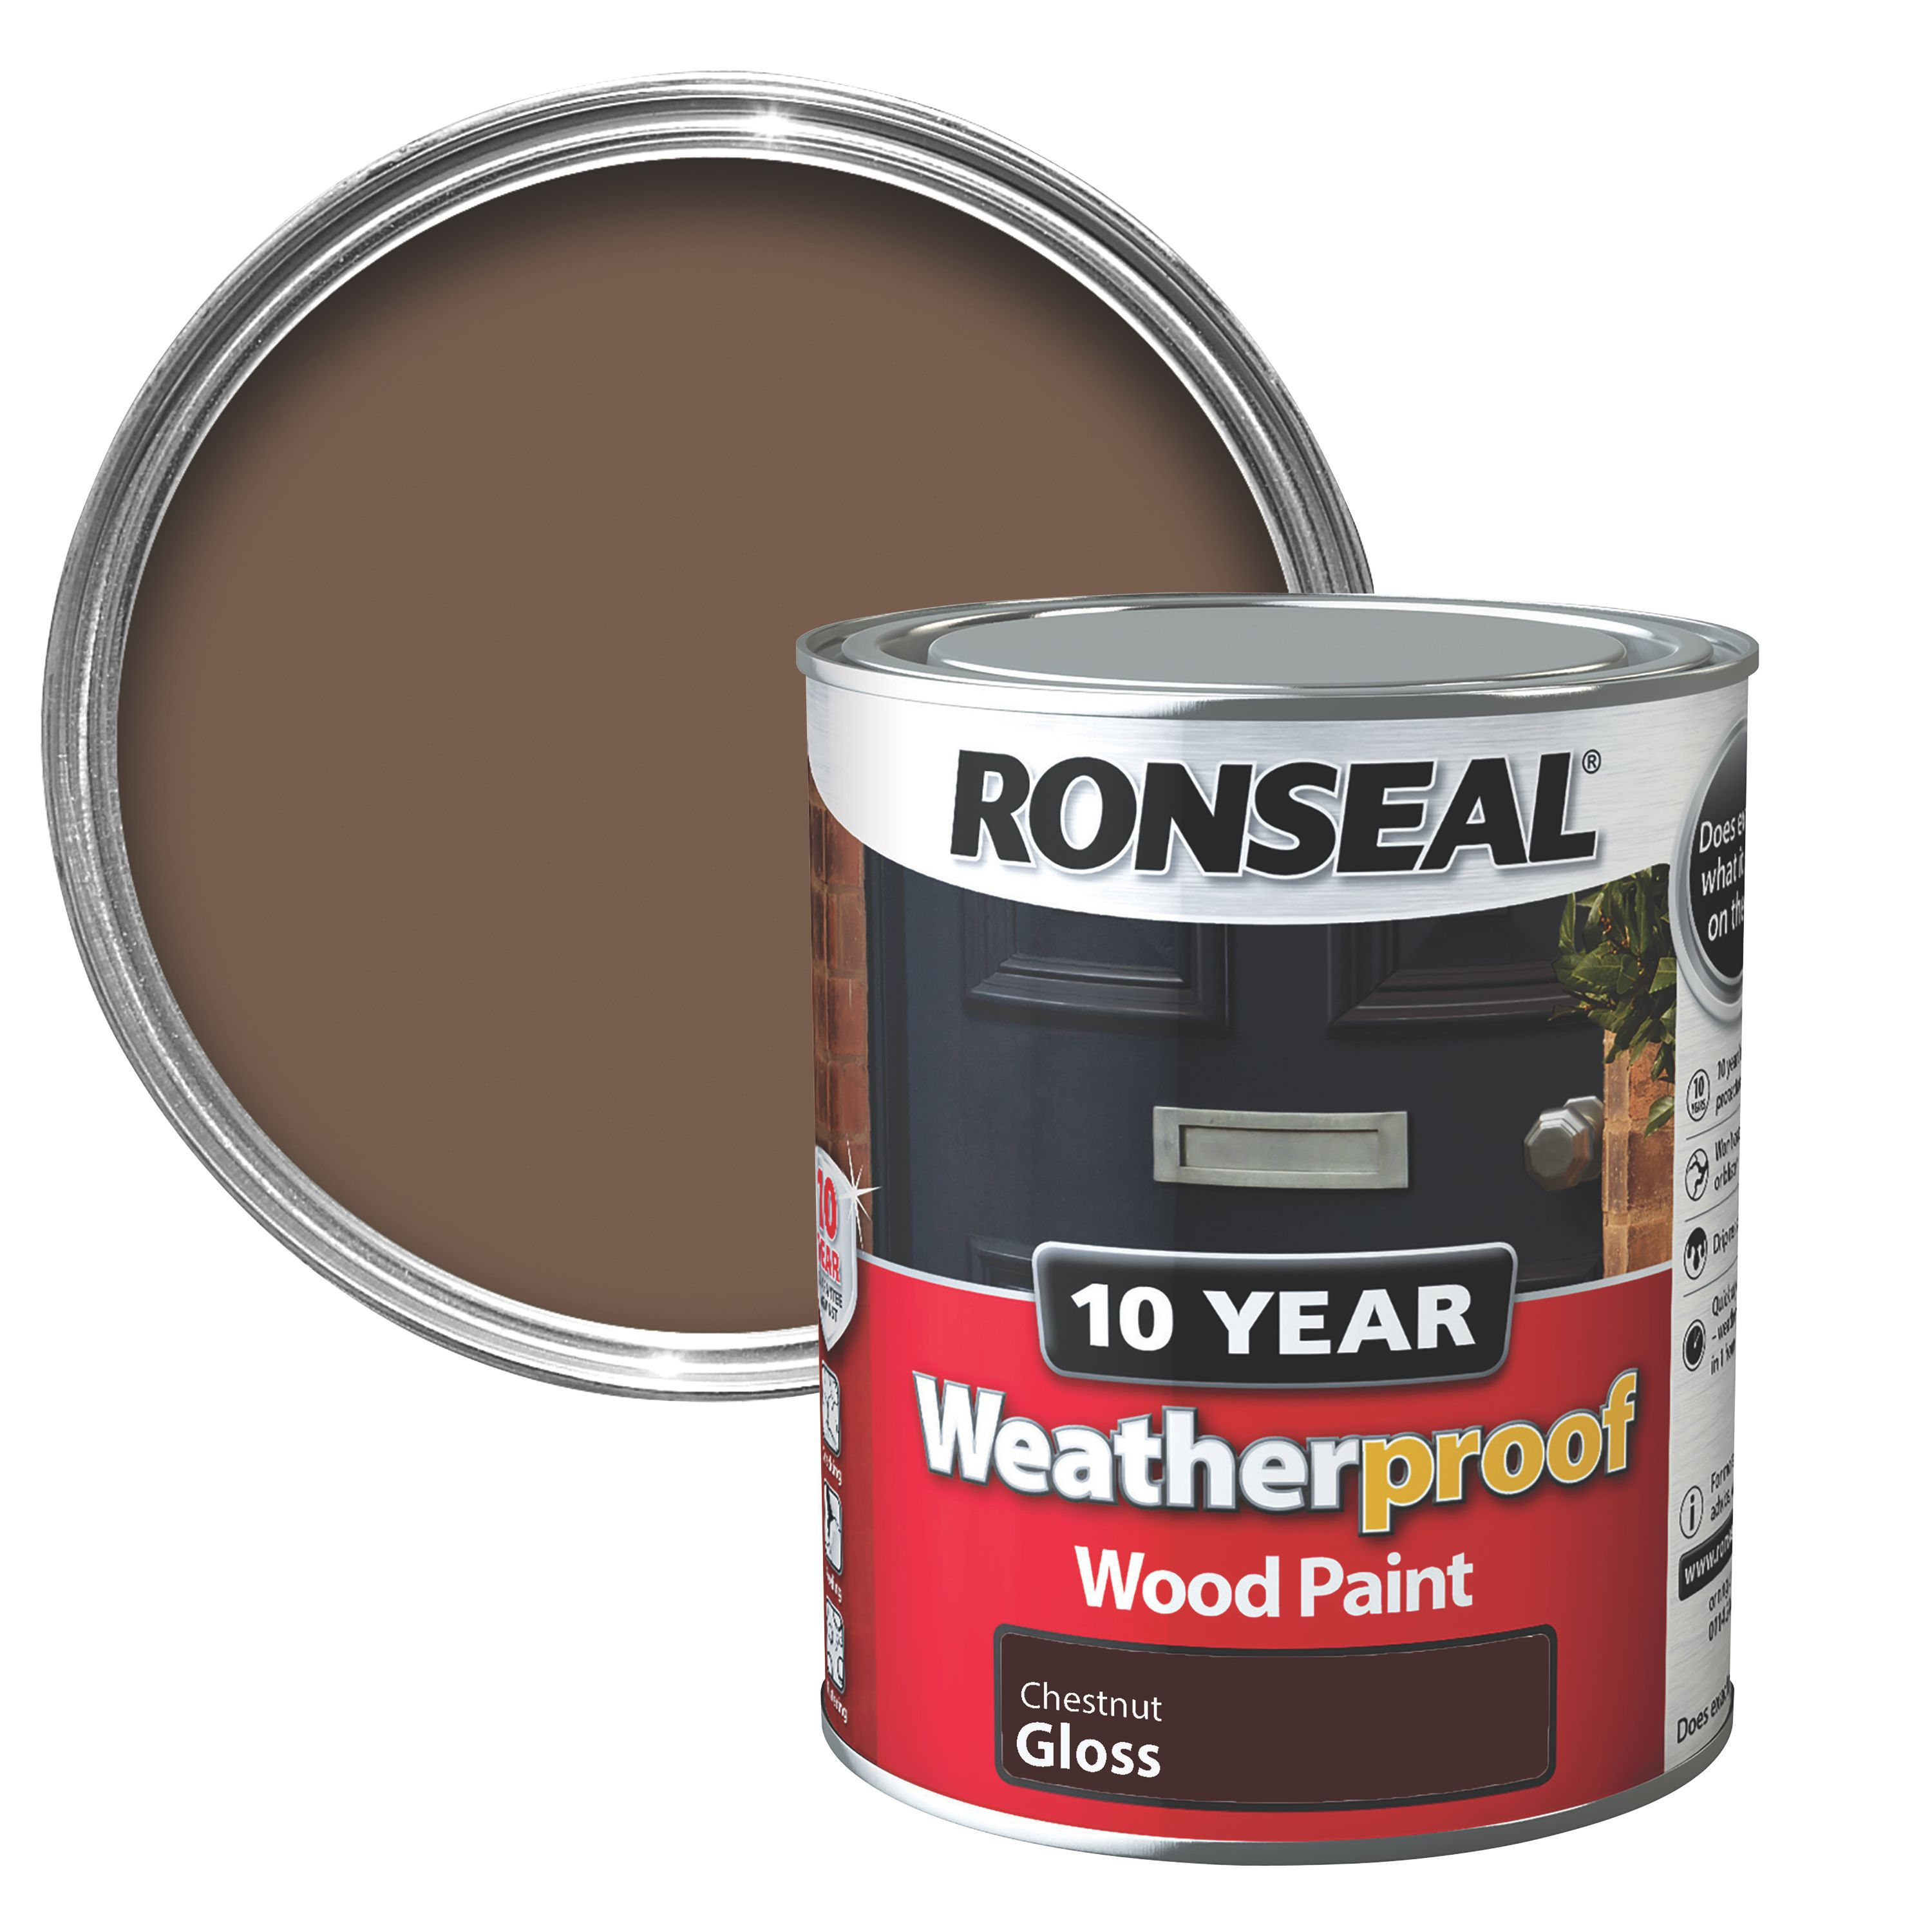 Ronseal Chestnut Gloss Wood Paint Departments Diy At B Q